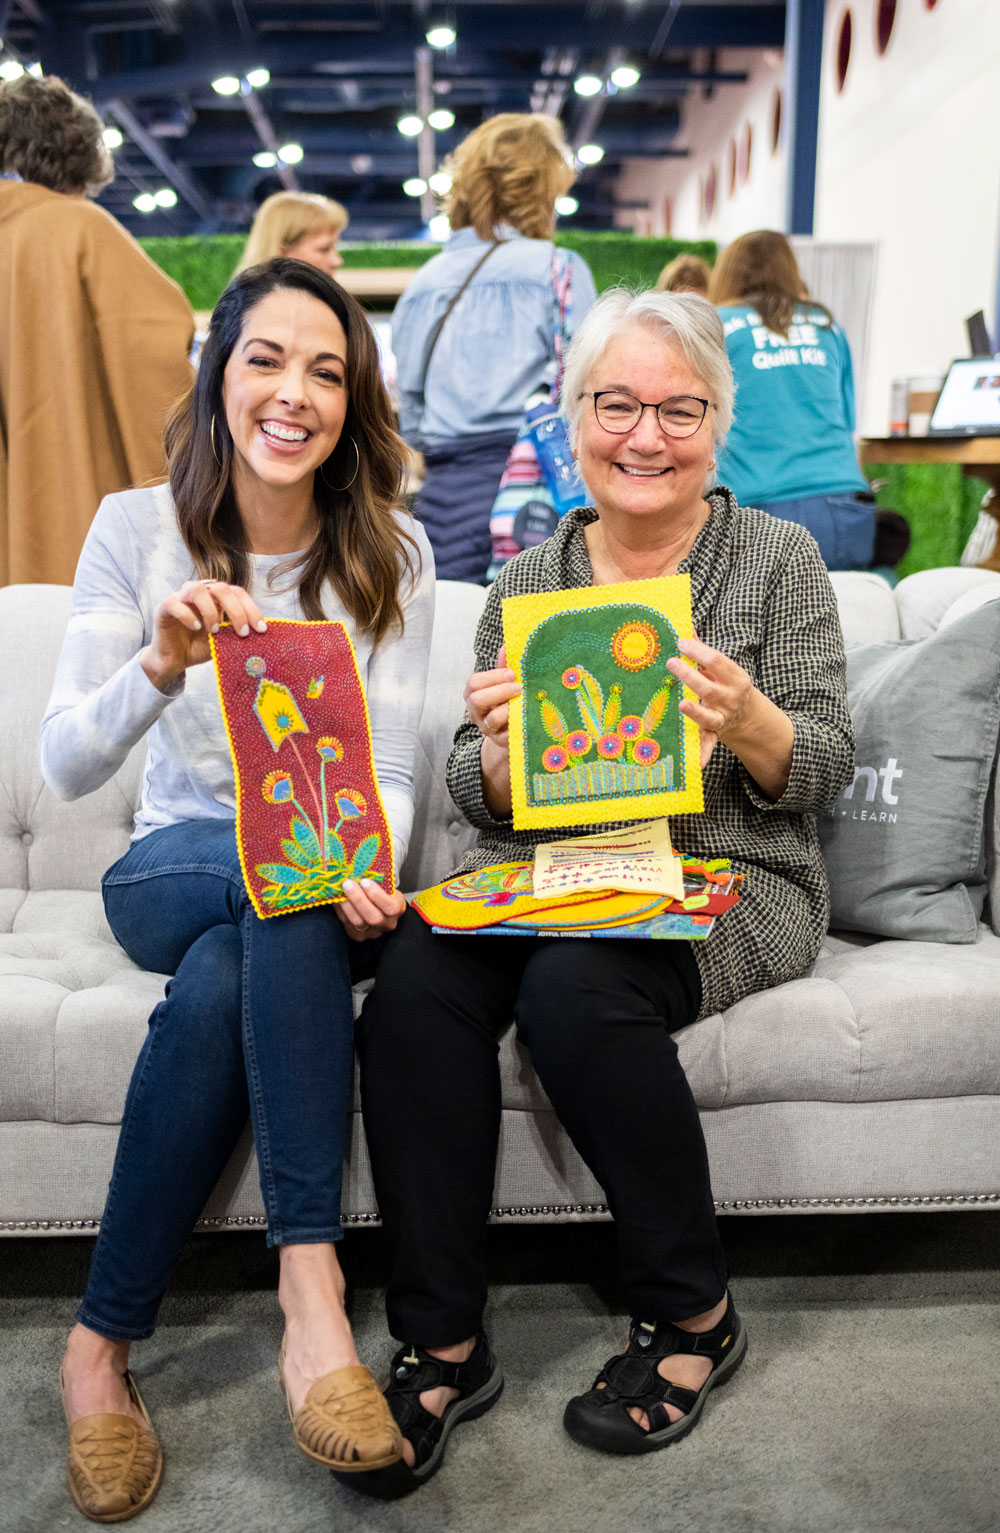 Get the inside scoop on the Houston Quilt Festival through interviews with leaders, crafters and teachers in our quilting community | suzyquilts.com